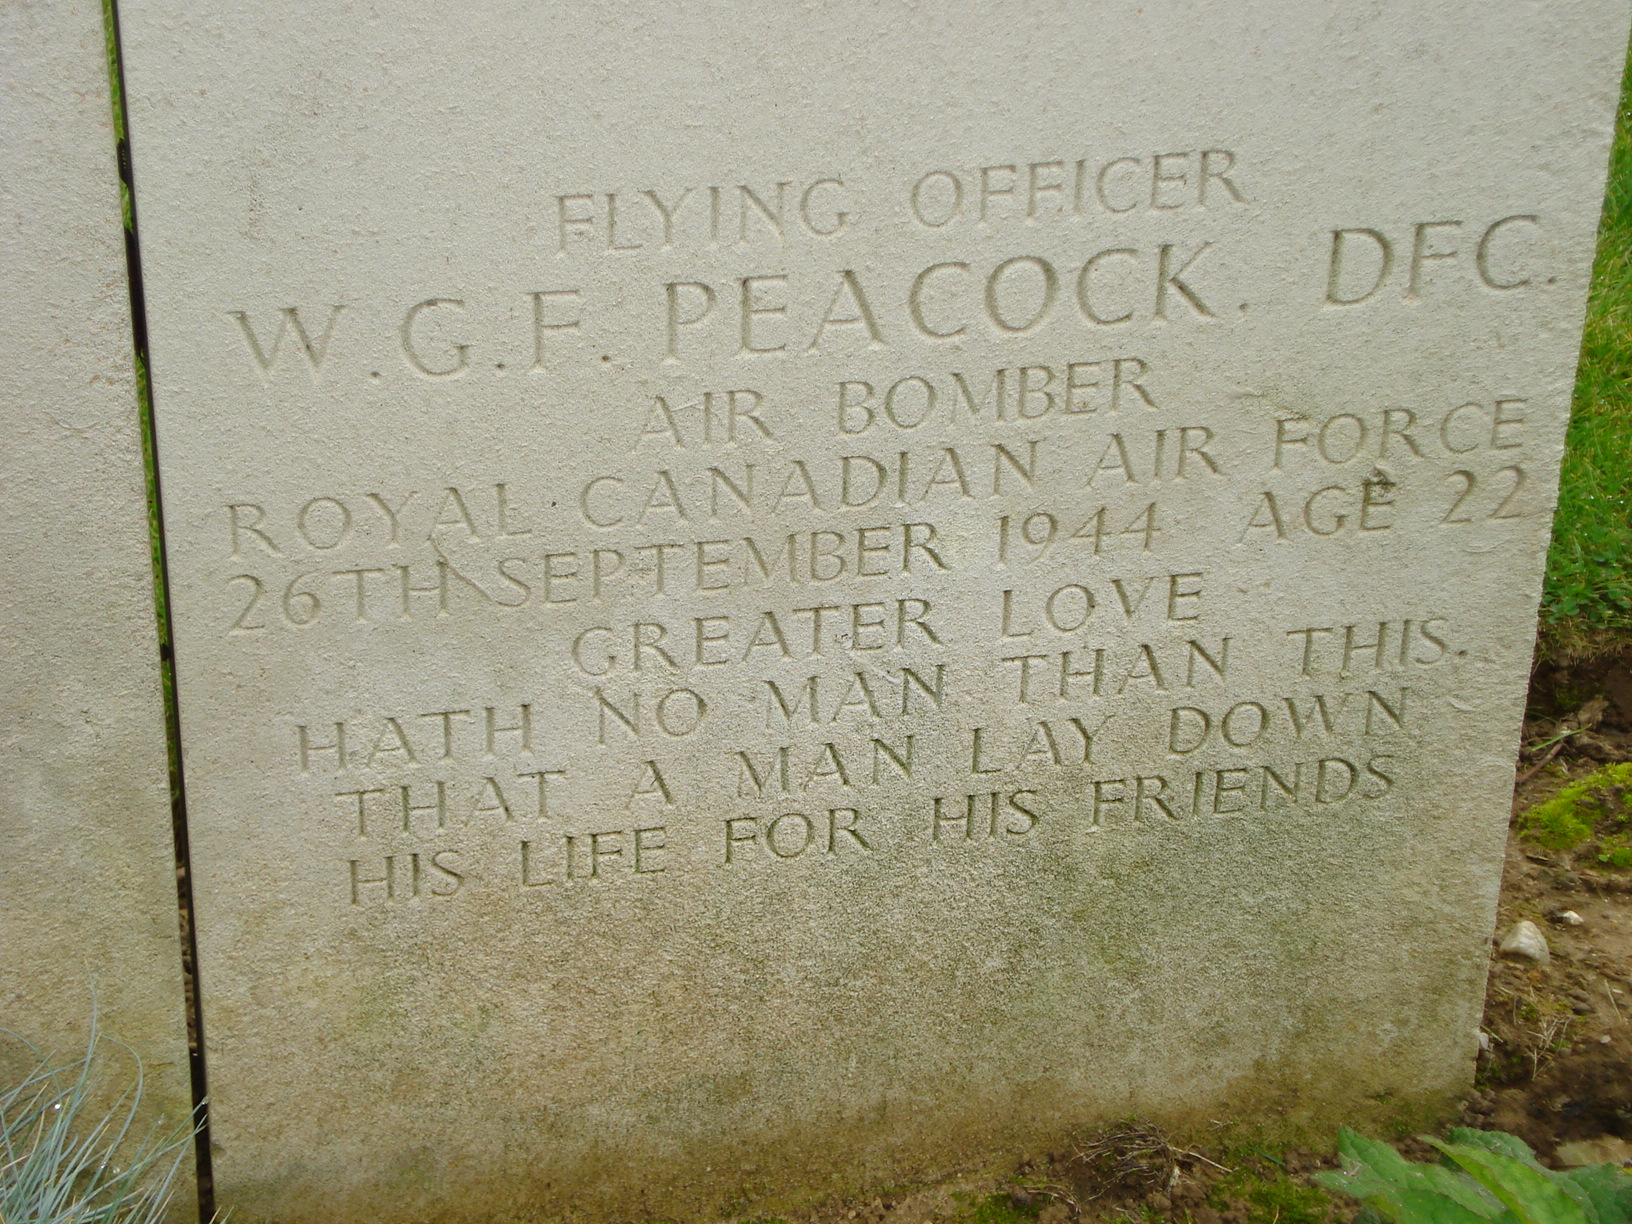 Inscription– Photo taken in October 2007 while visiting the cemetery with my father (Warren Grant) who was a first cousin and boyhhood friend of Wilfred Peacock.